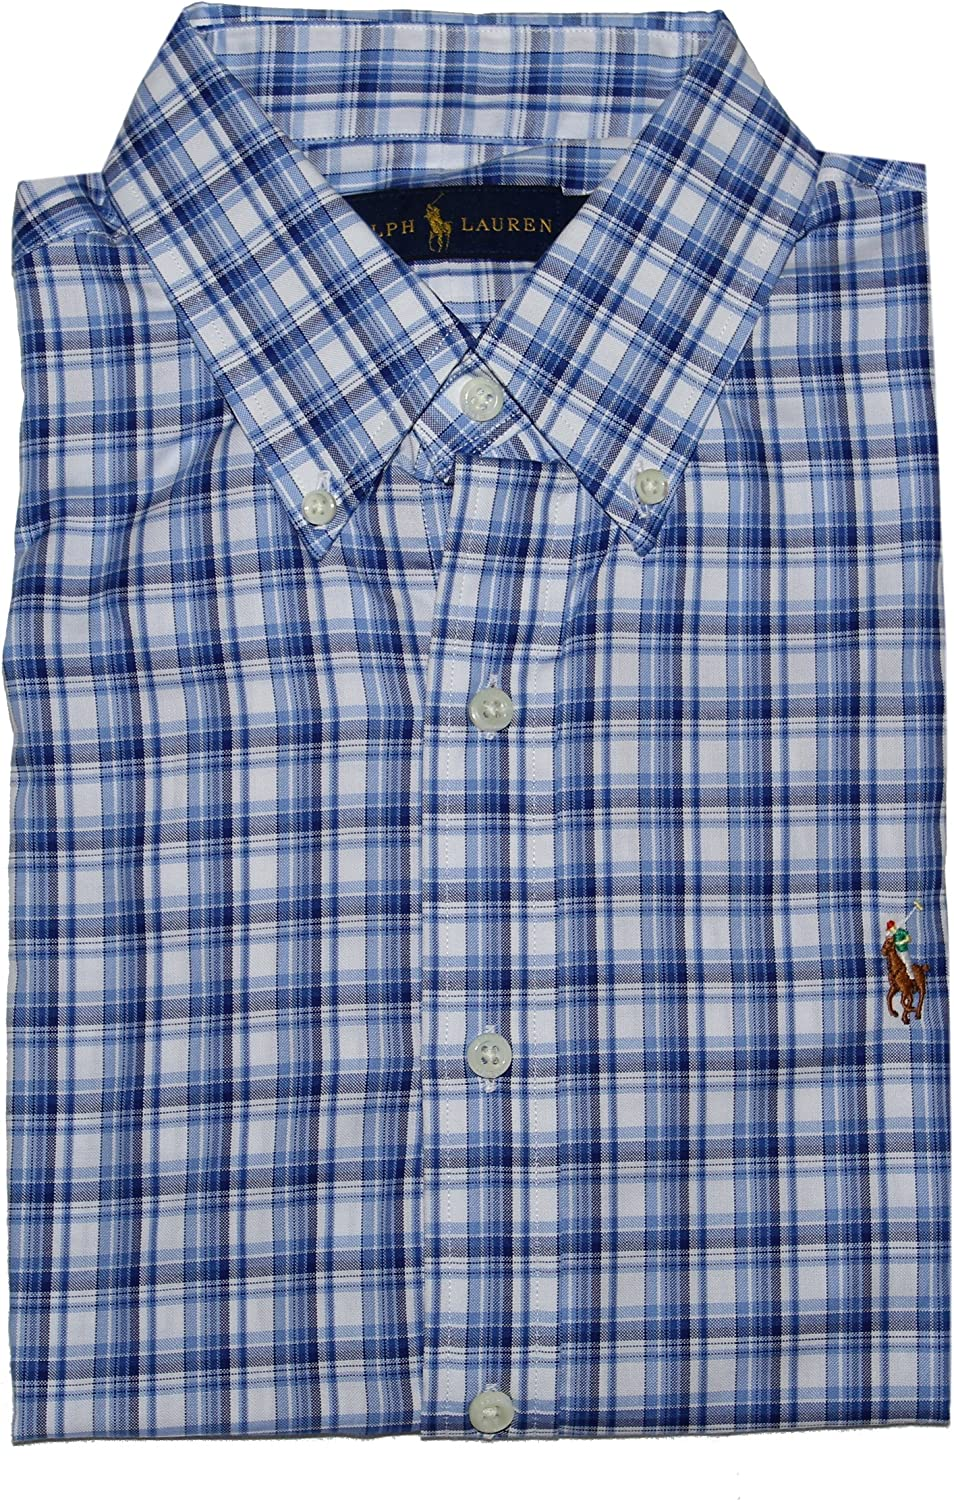 Ralph Lauren Polo Men's Classic-Fit Long Sleeve Gingham Checked Performance Shirt